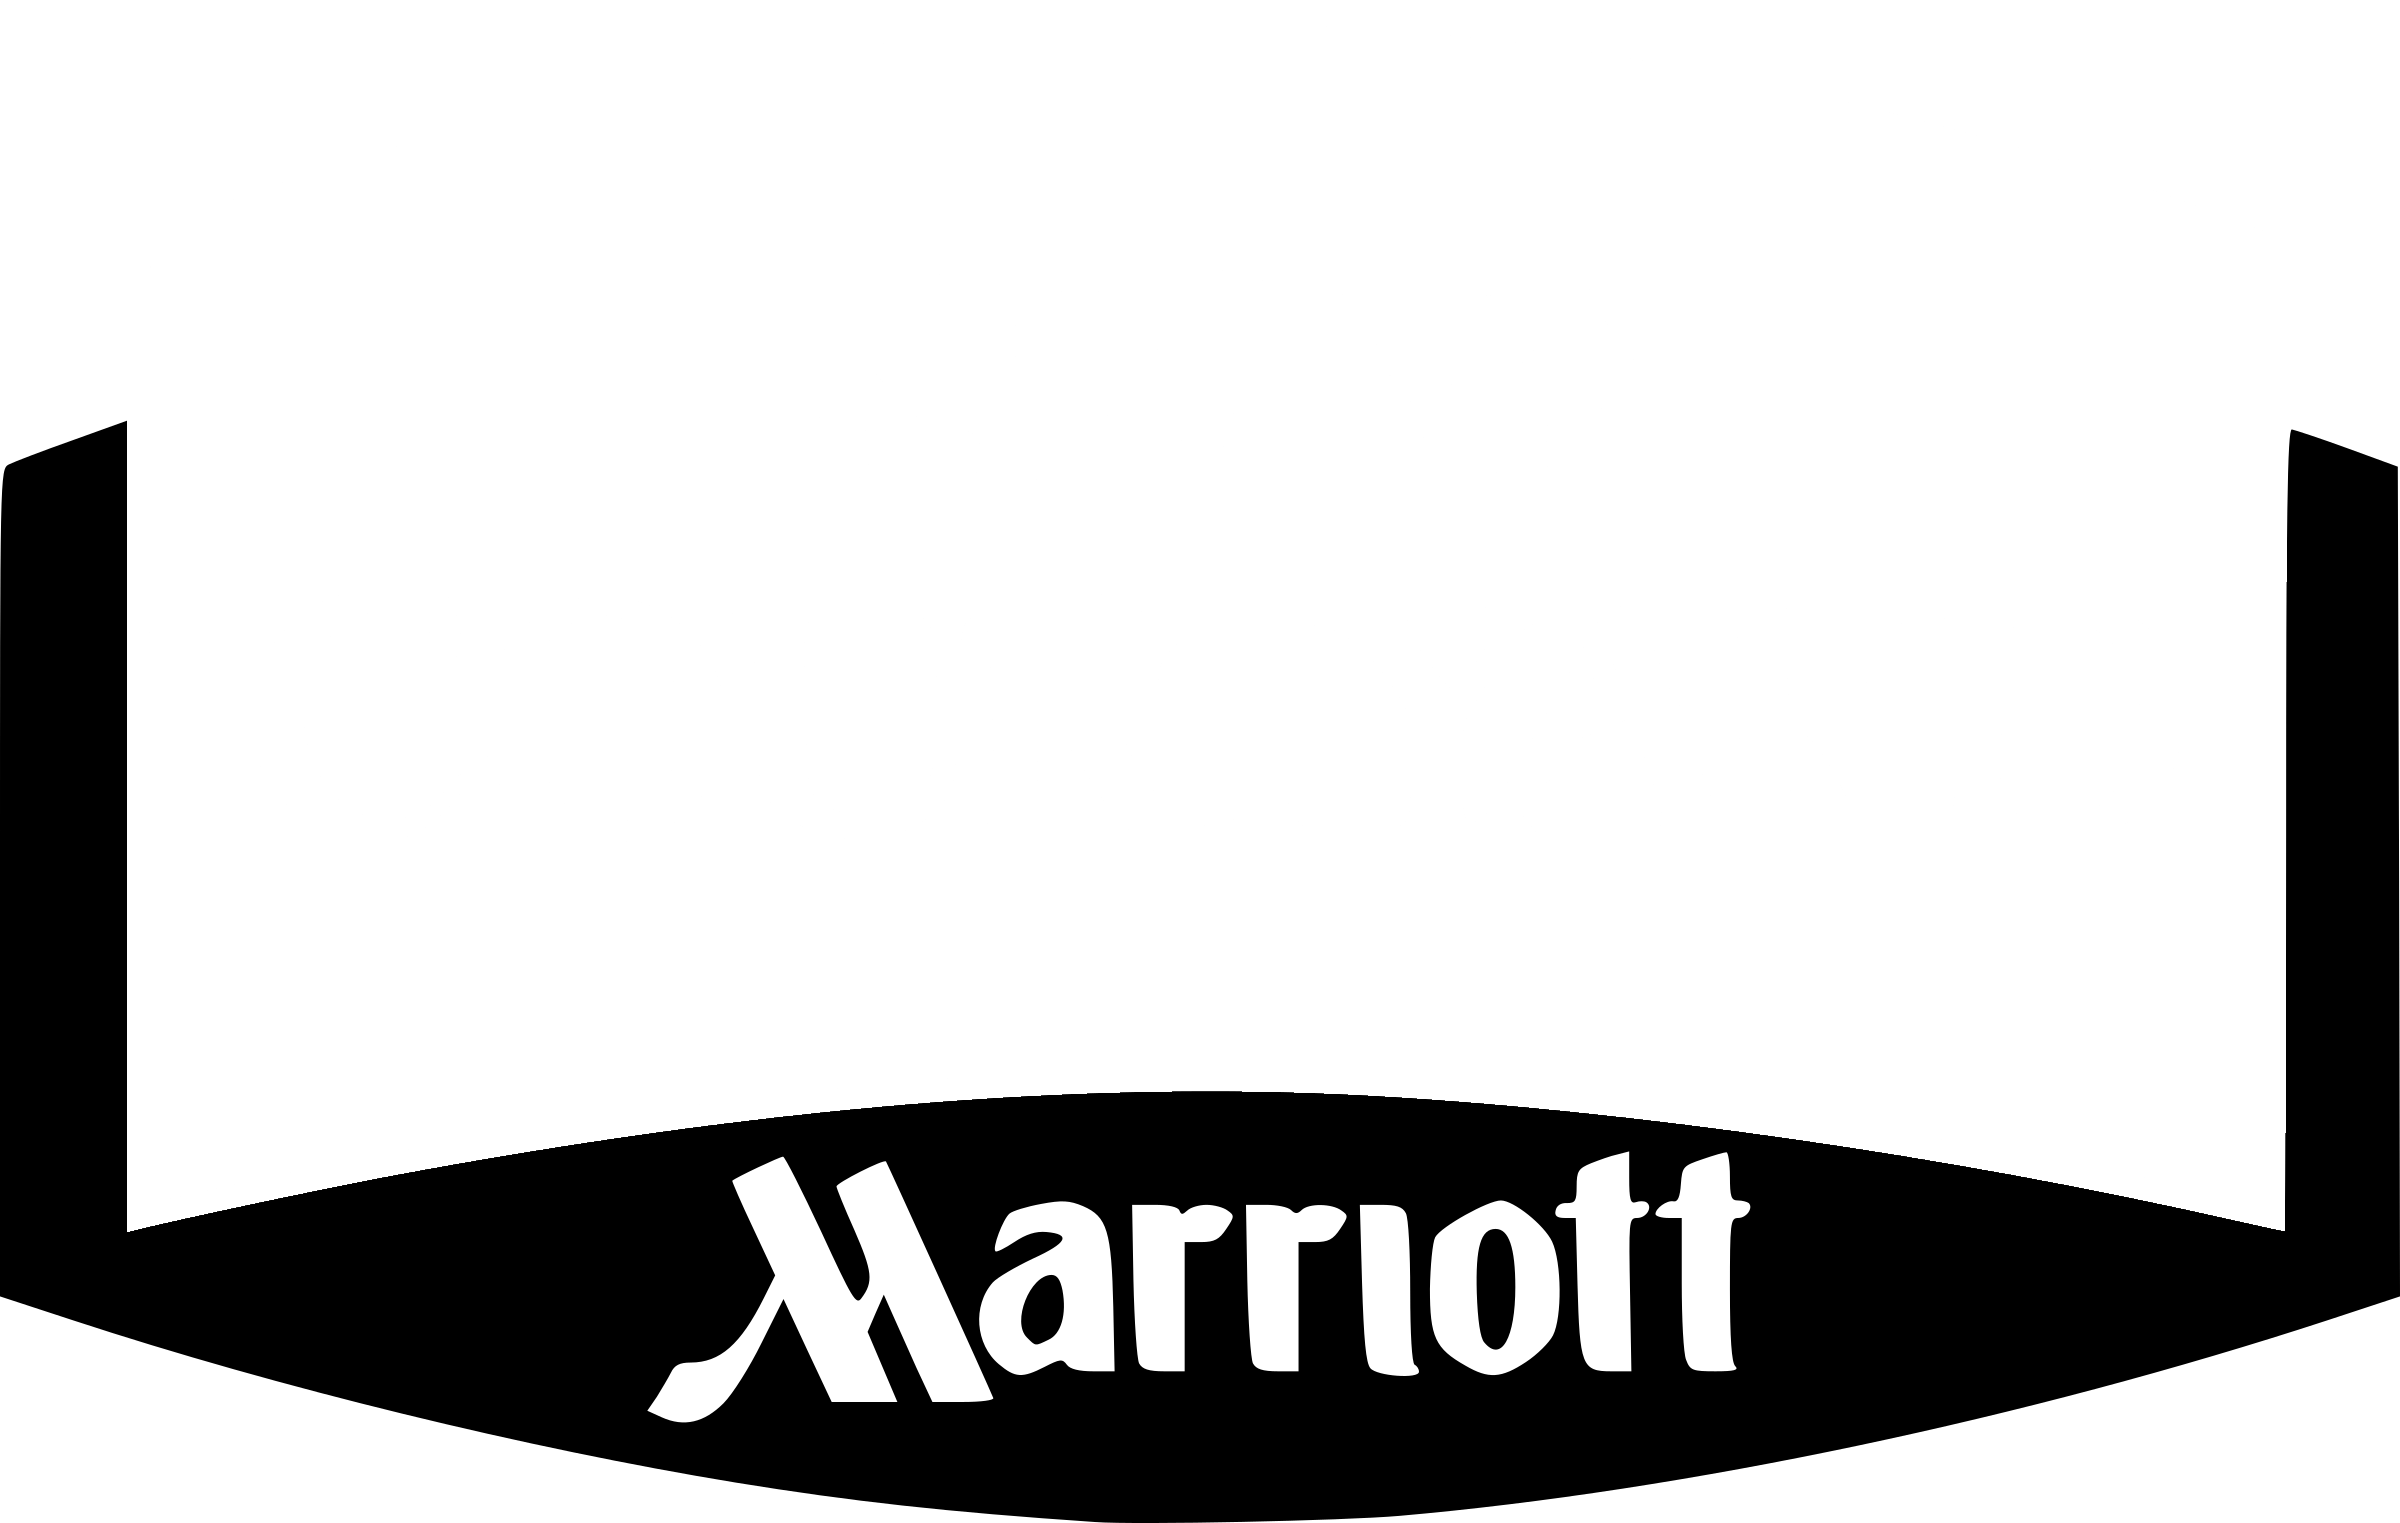 Courtyard by Marriott Logo PNG Transparent & SVG Vector.